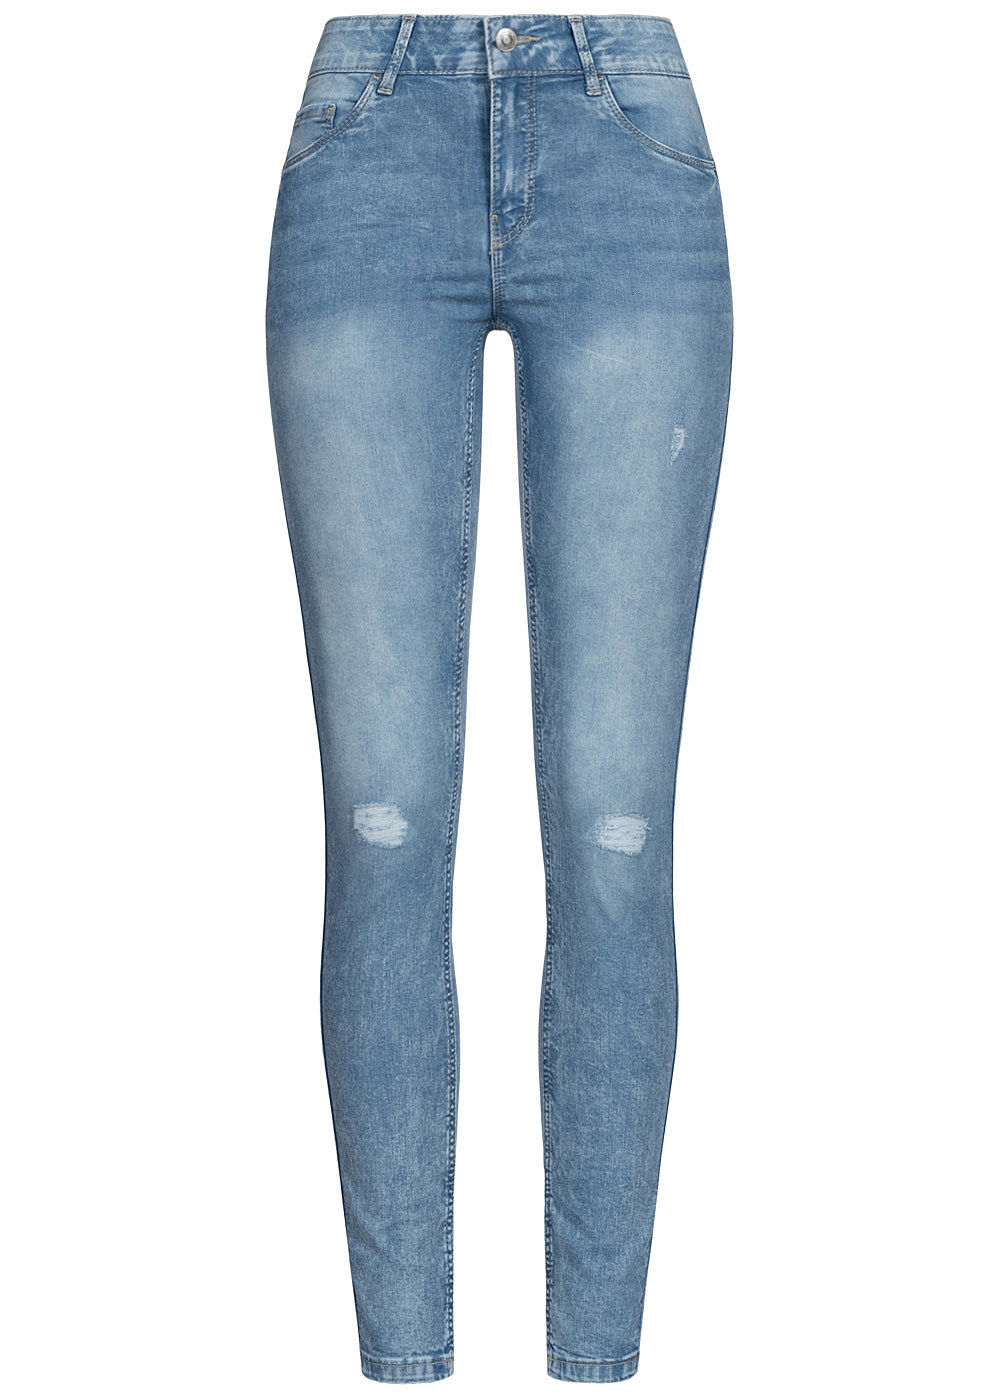 Vero Moda Damen NOOS Slim Fit Shape-Up Jeans 5-Pockets Destroy Look hell blau denim - Art.-Nr.: 20063161